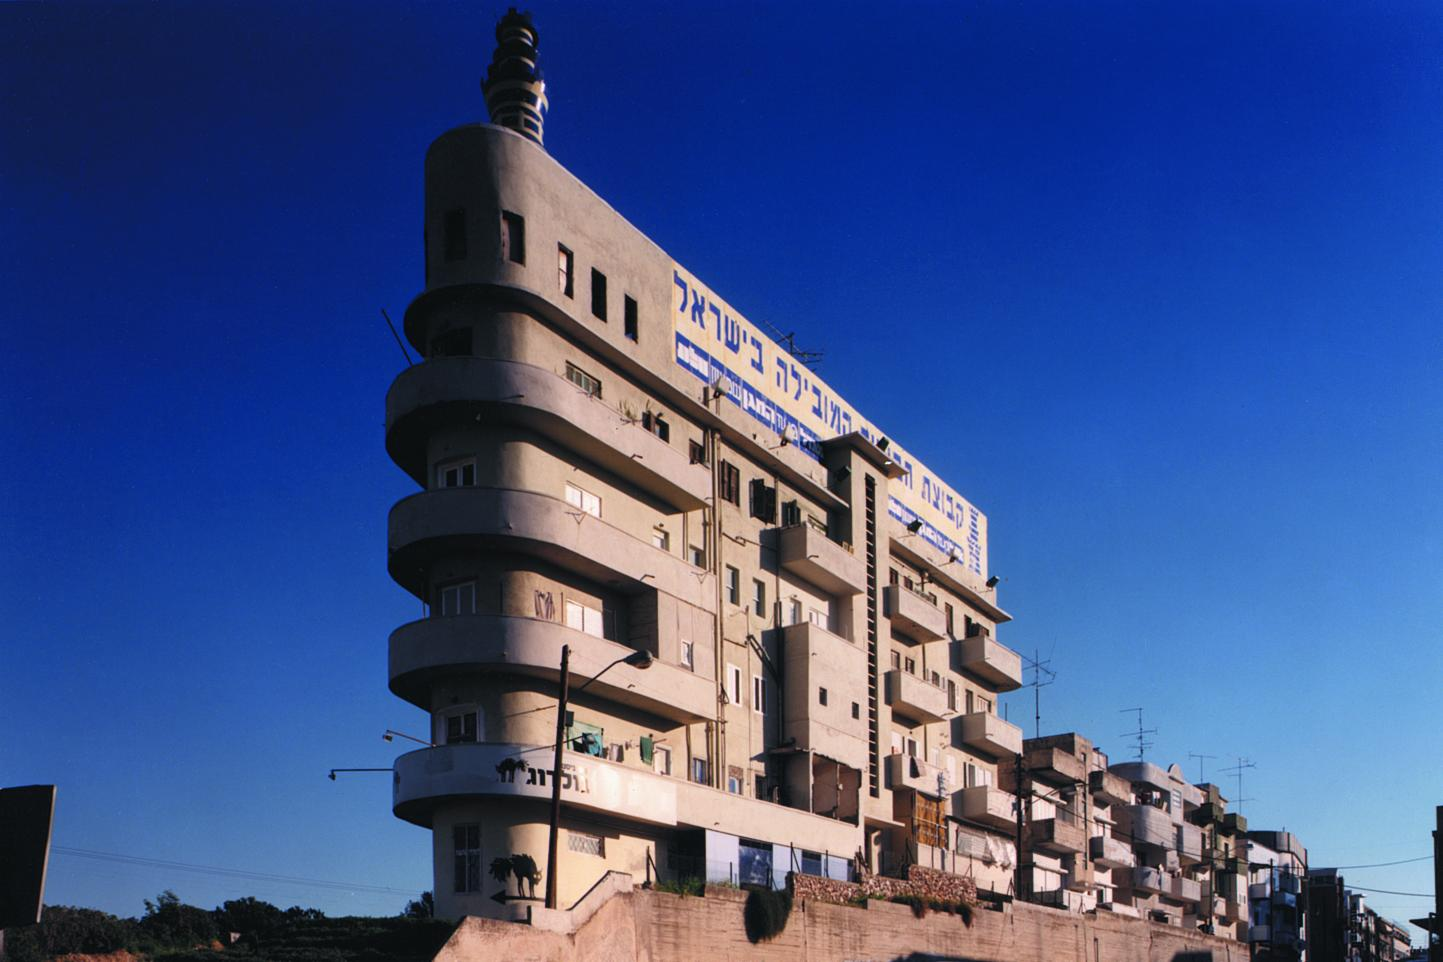 The Bauhaus Architecture of Tel Aviv - Artsy on